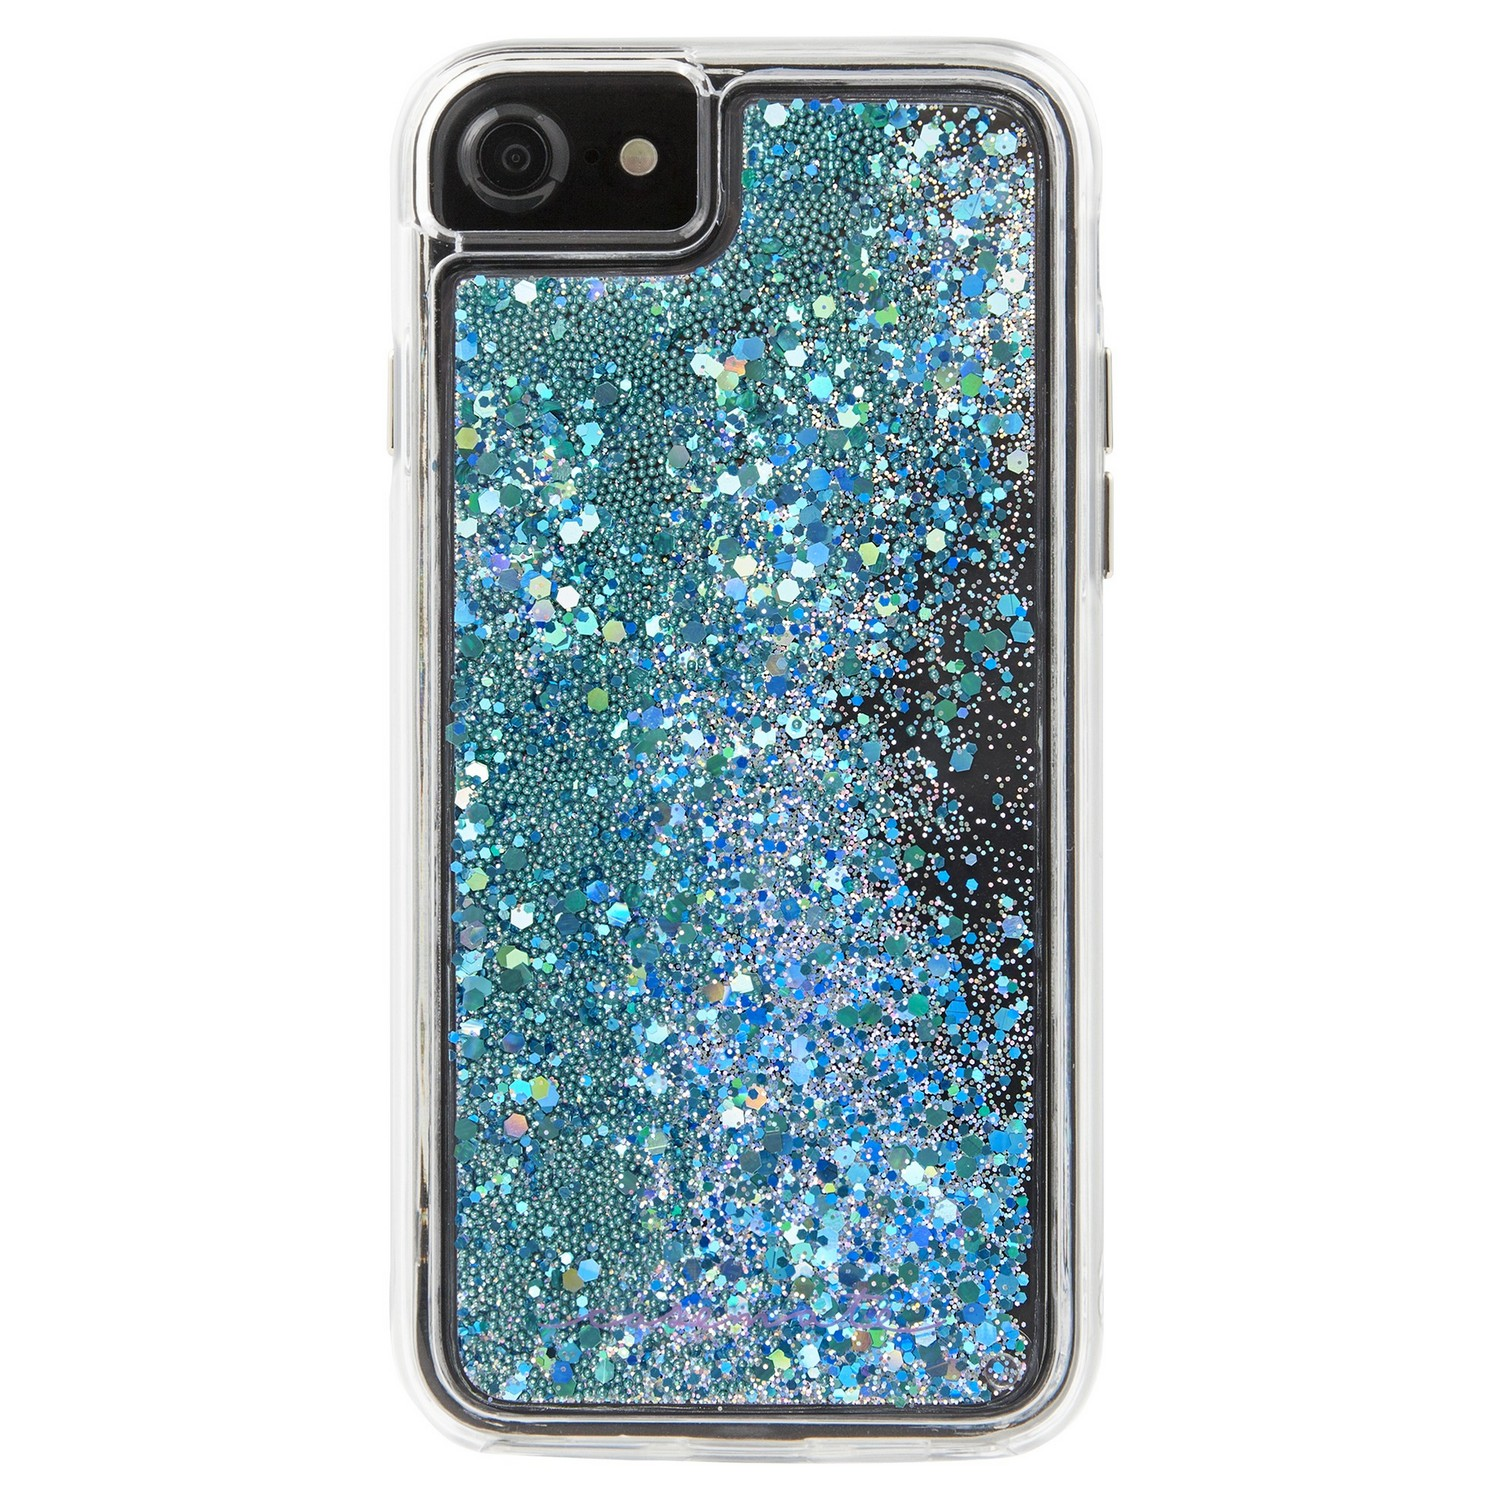 iPhone 8/7/6S Case-mate Iridescent Waterfall Naked Tough